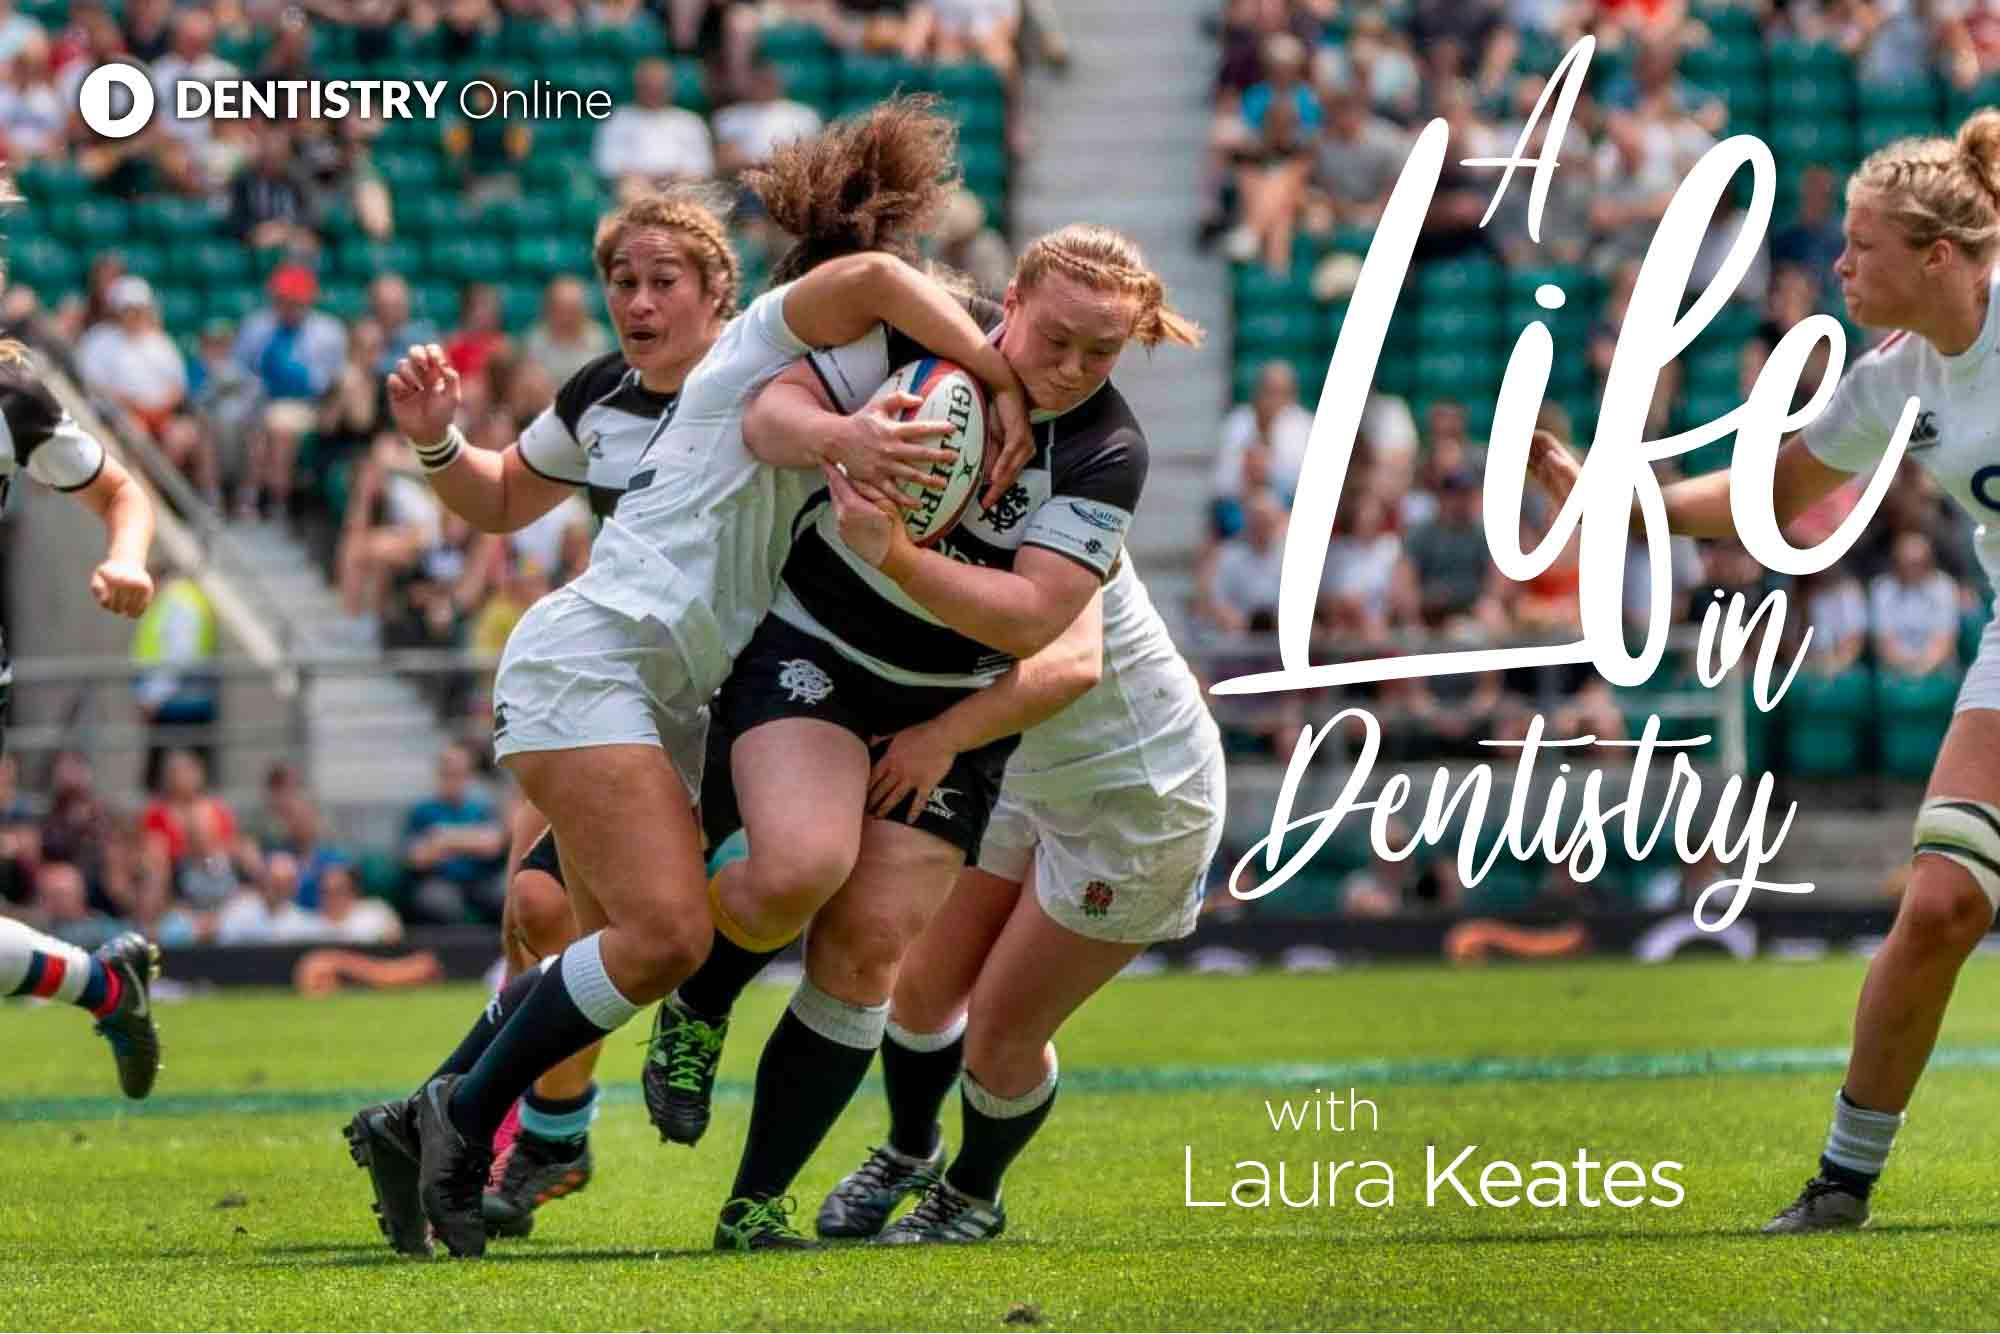 Worcester Warriors player and 2014 World Cup winner Laura Keates talks to Dentistry Online about balancing her dental degree with rugby